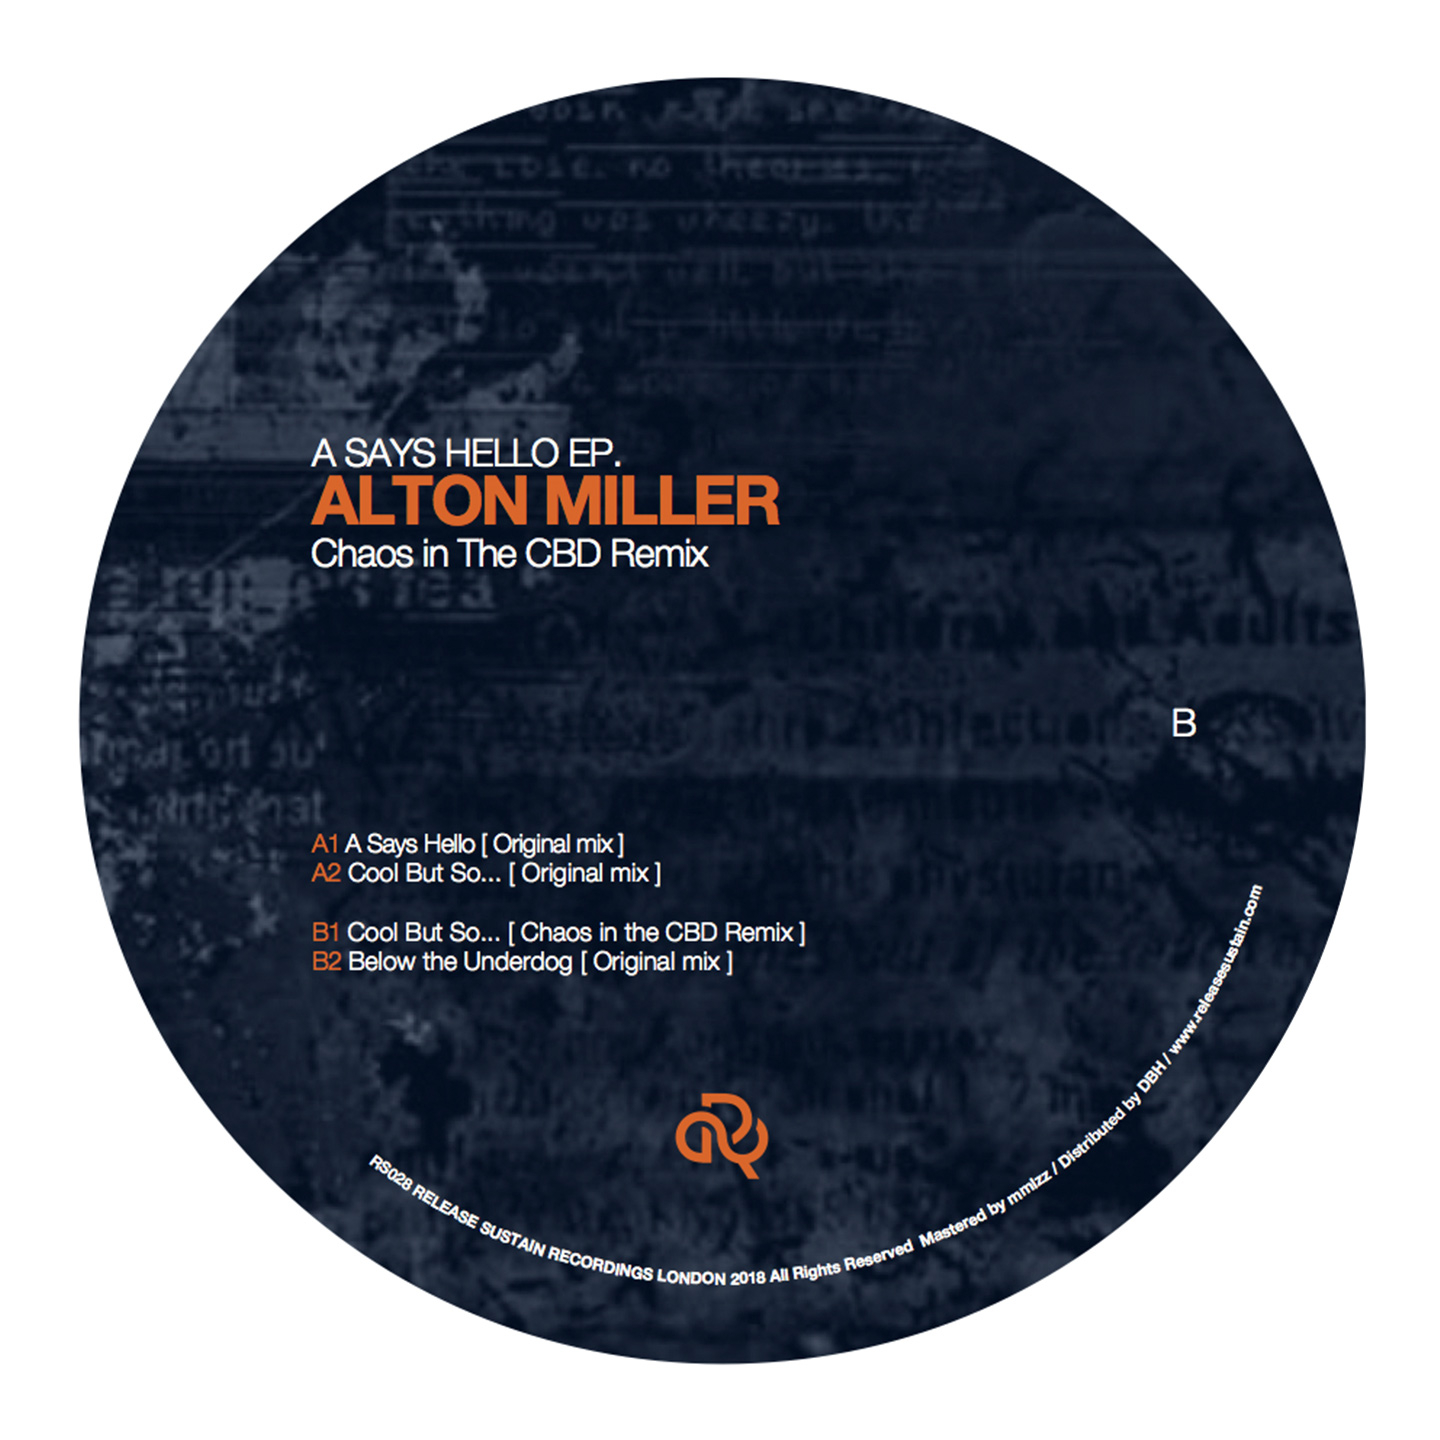 Alton Miller - A Says Hello